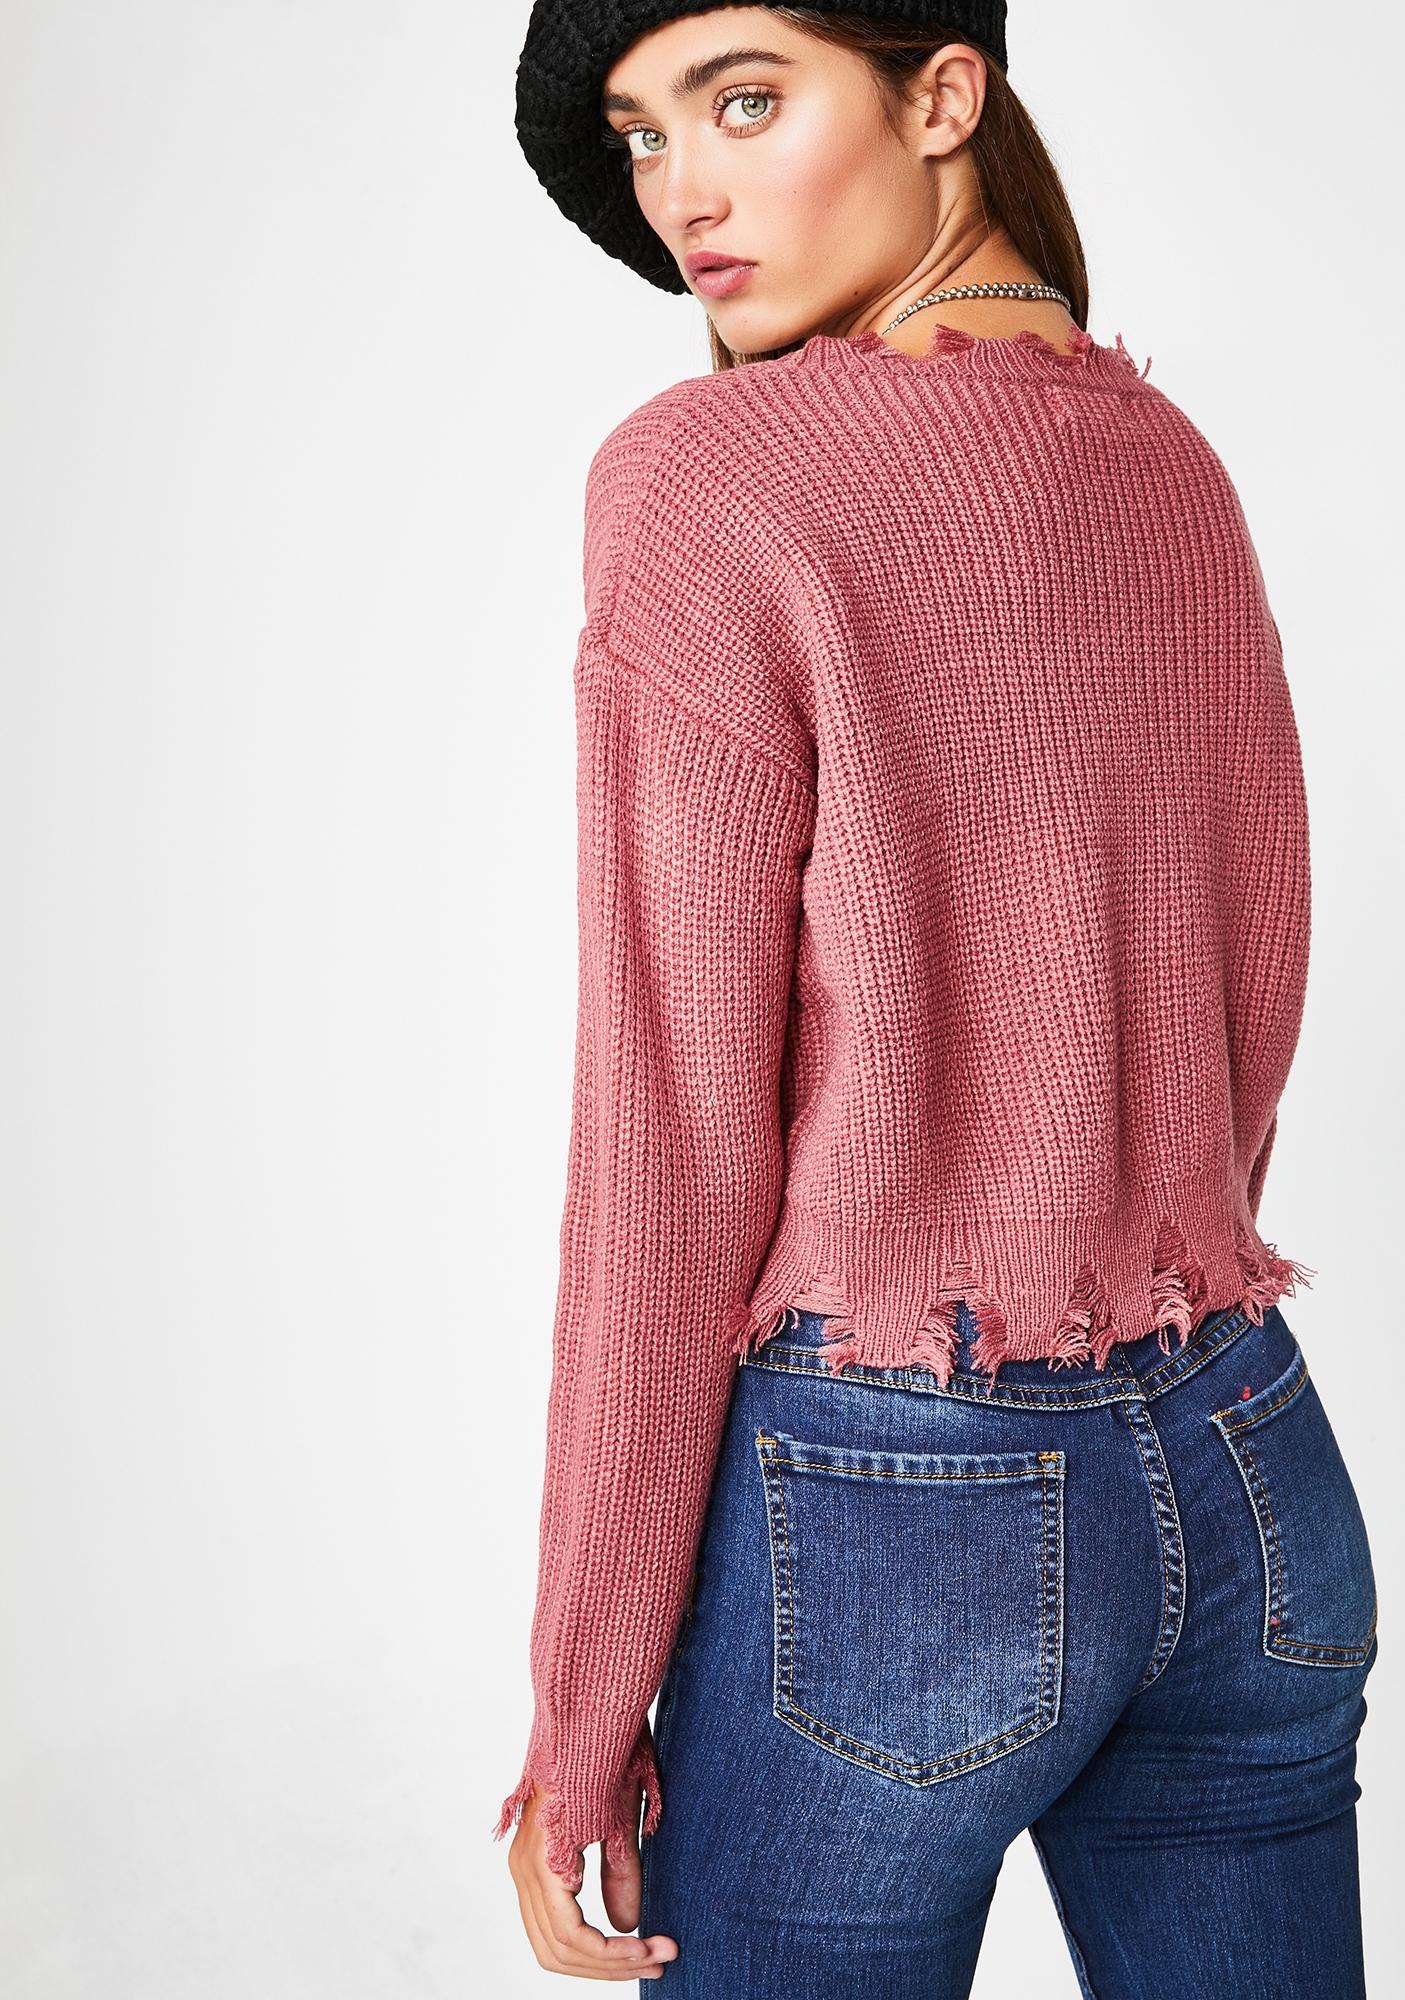 Rose No Priorities Cropped Sweater